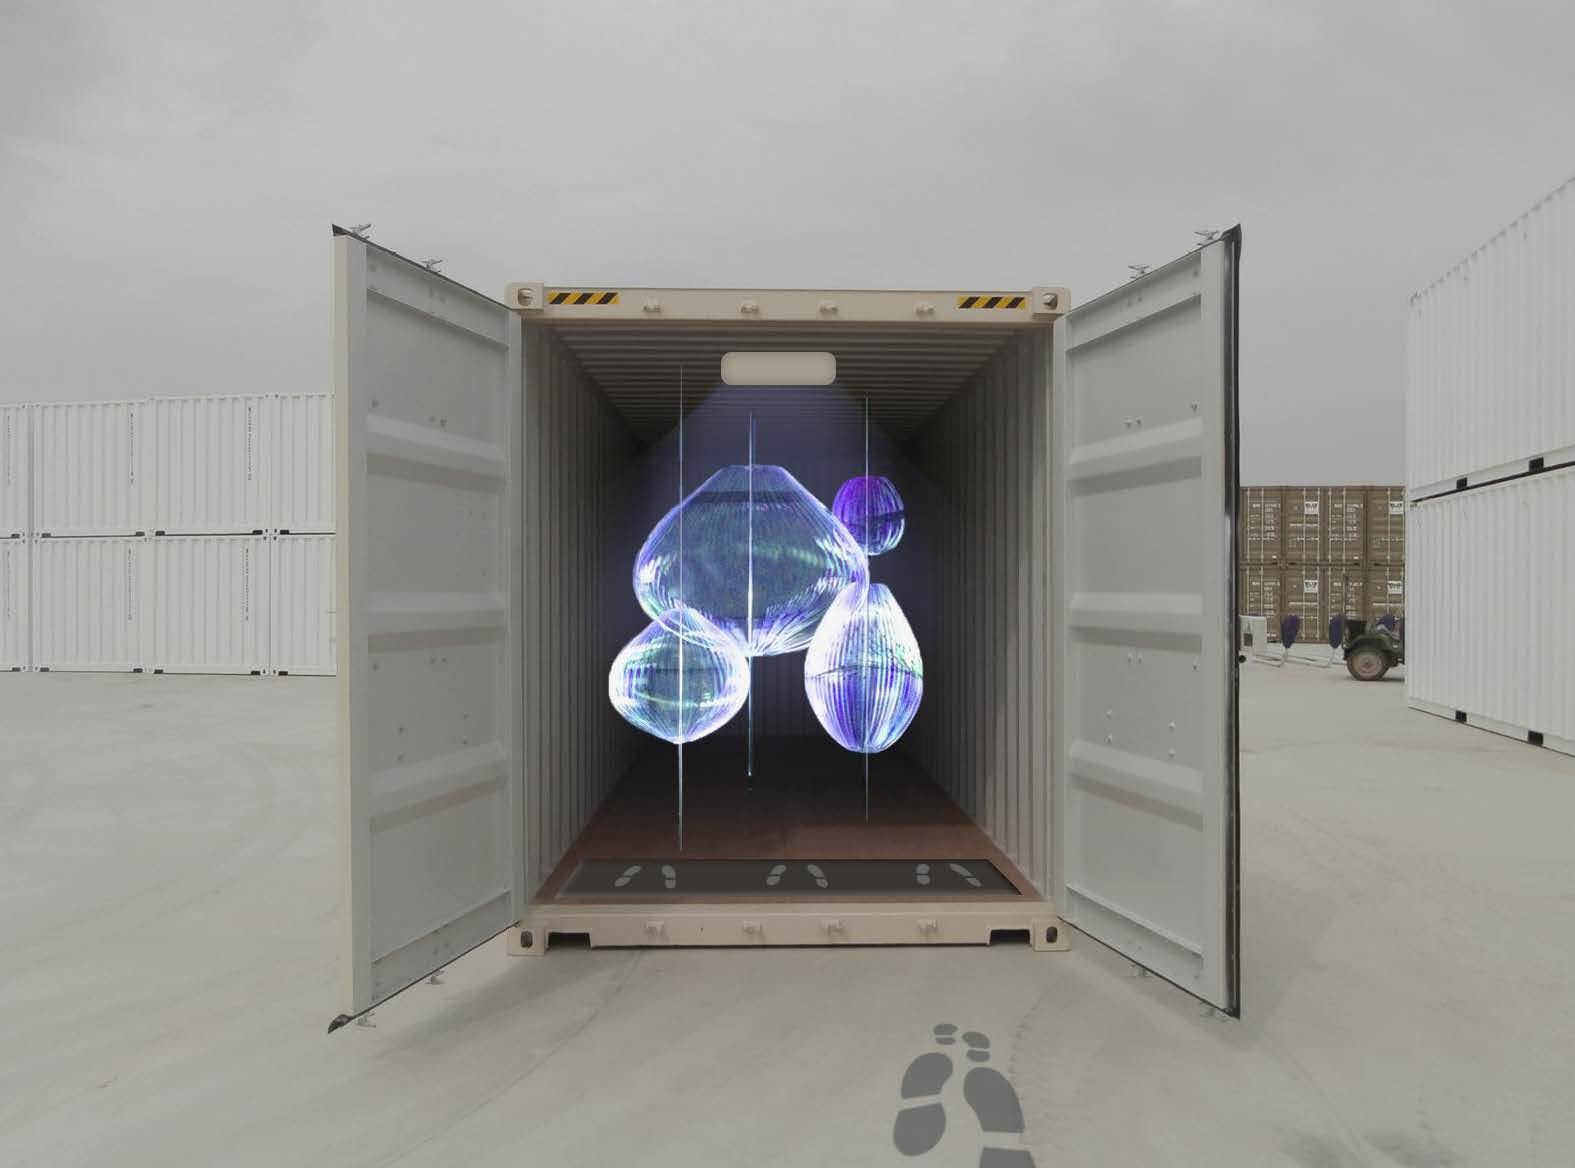 A shipping container from The Performance Arcade.